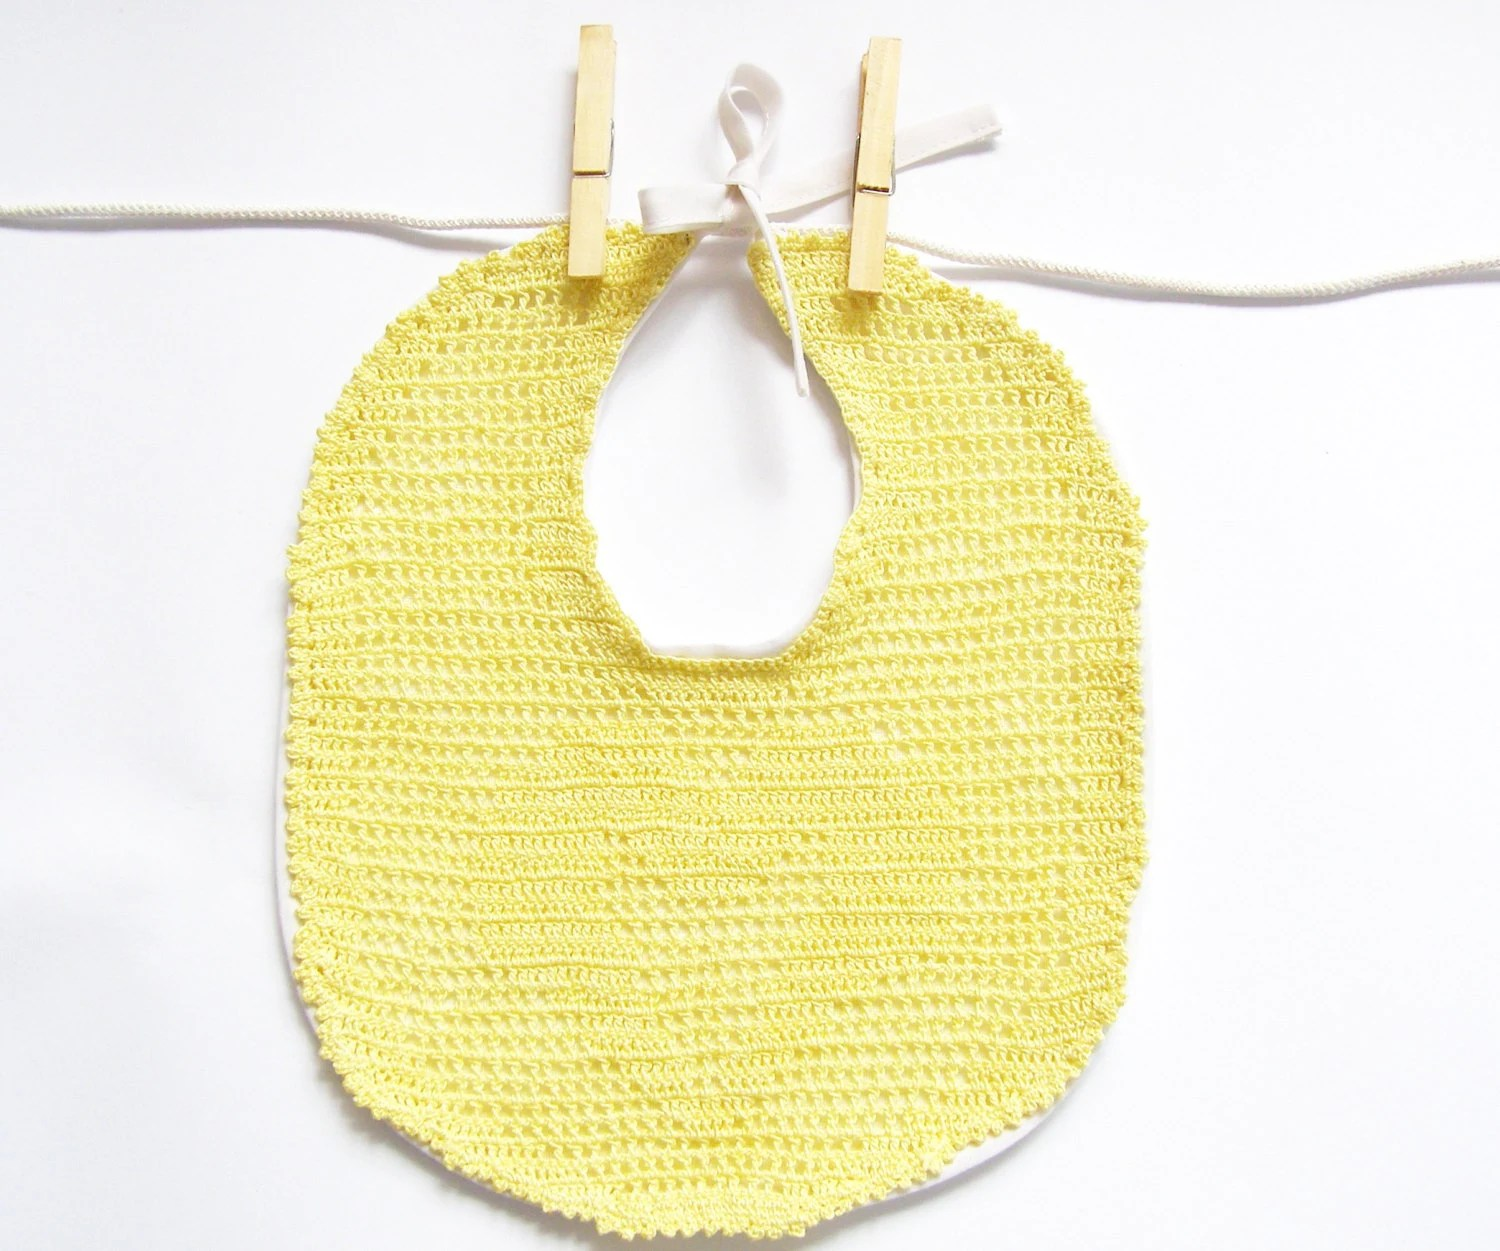 Baby Bib Crochet - Lace Cotton and Linen Baby Bib - Gift for Baby - Baby Shower Gift - Made to Order - Junikid